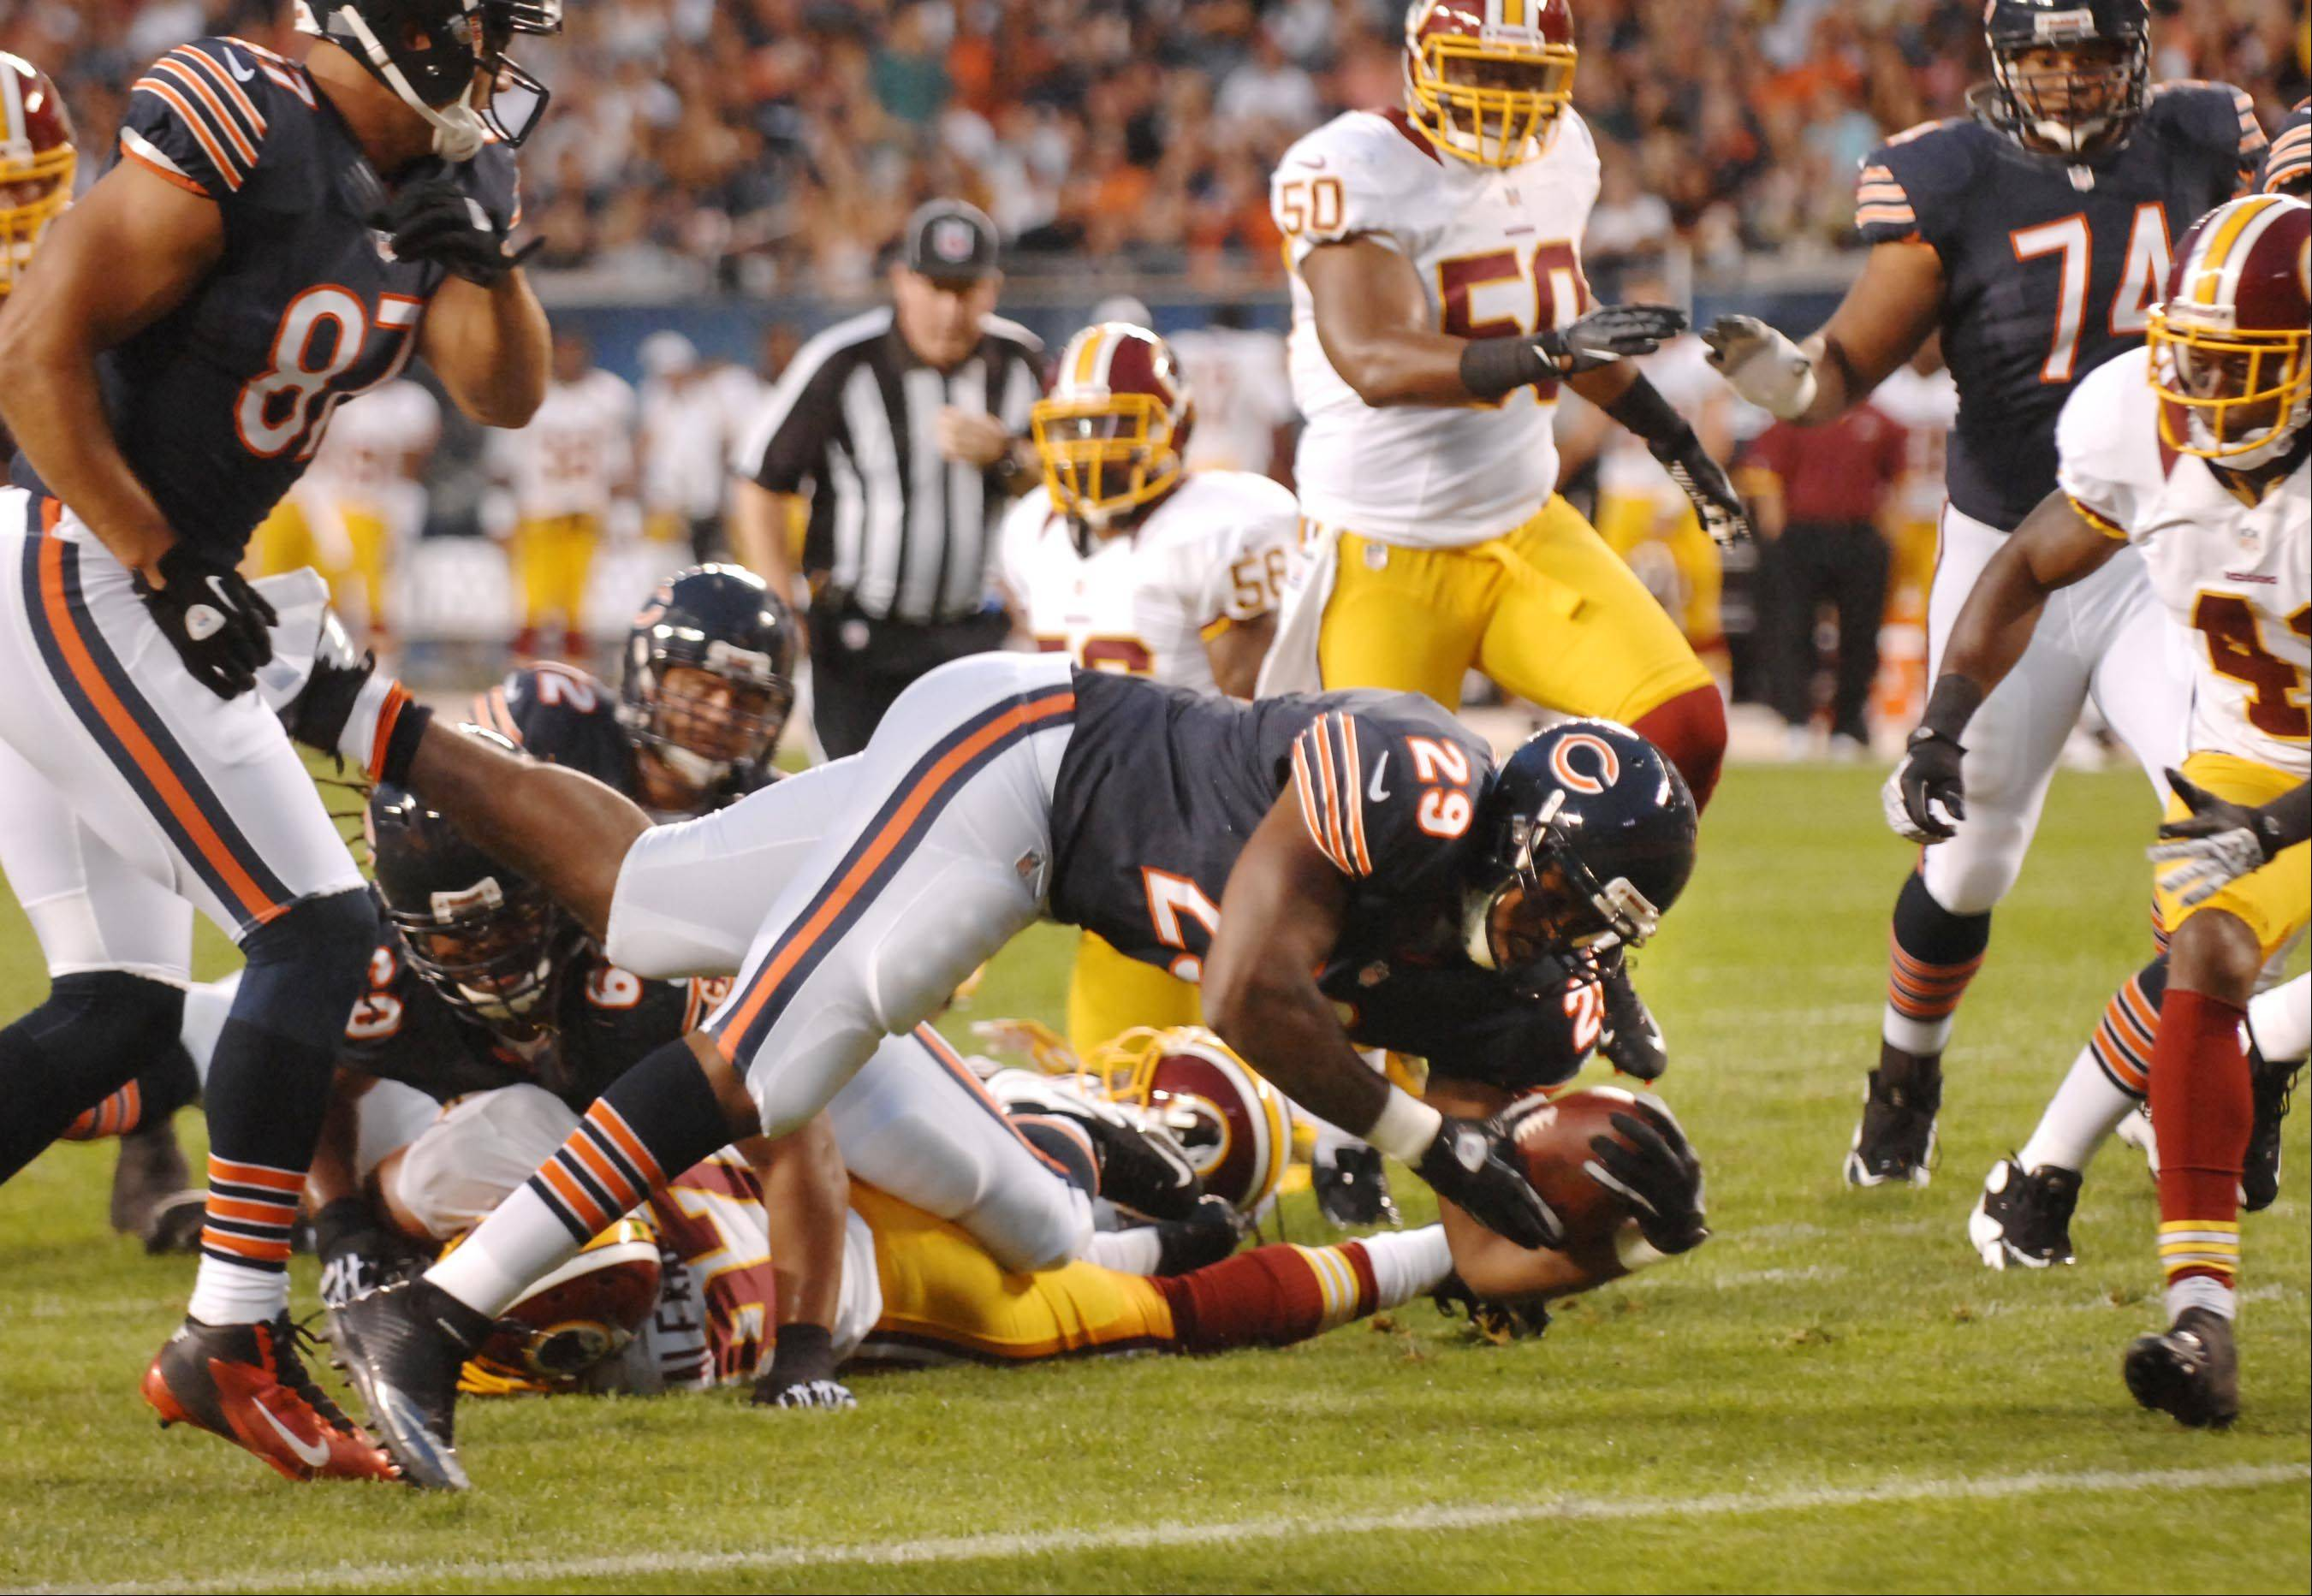 Chicago Bears running back Michael Bush scores his second first-half touchdown Saturday against the Washington Redskins in the second preseason game at Soldier Field in Chicago.